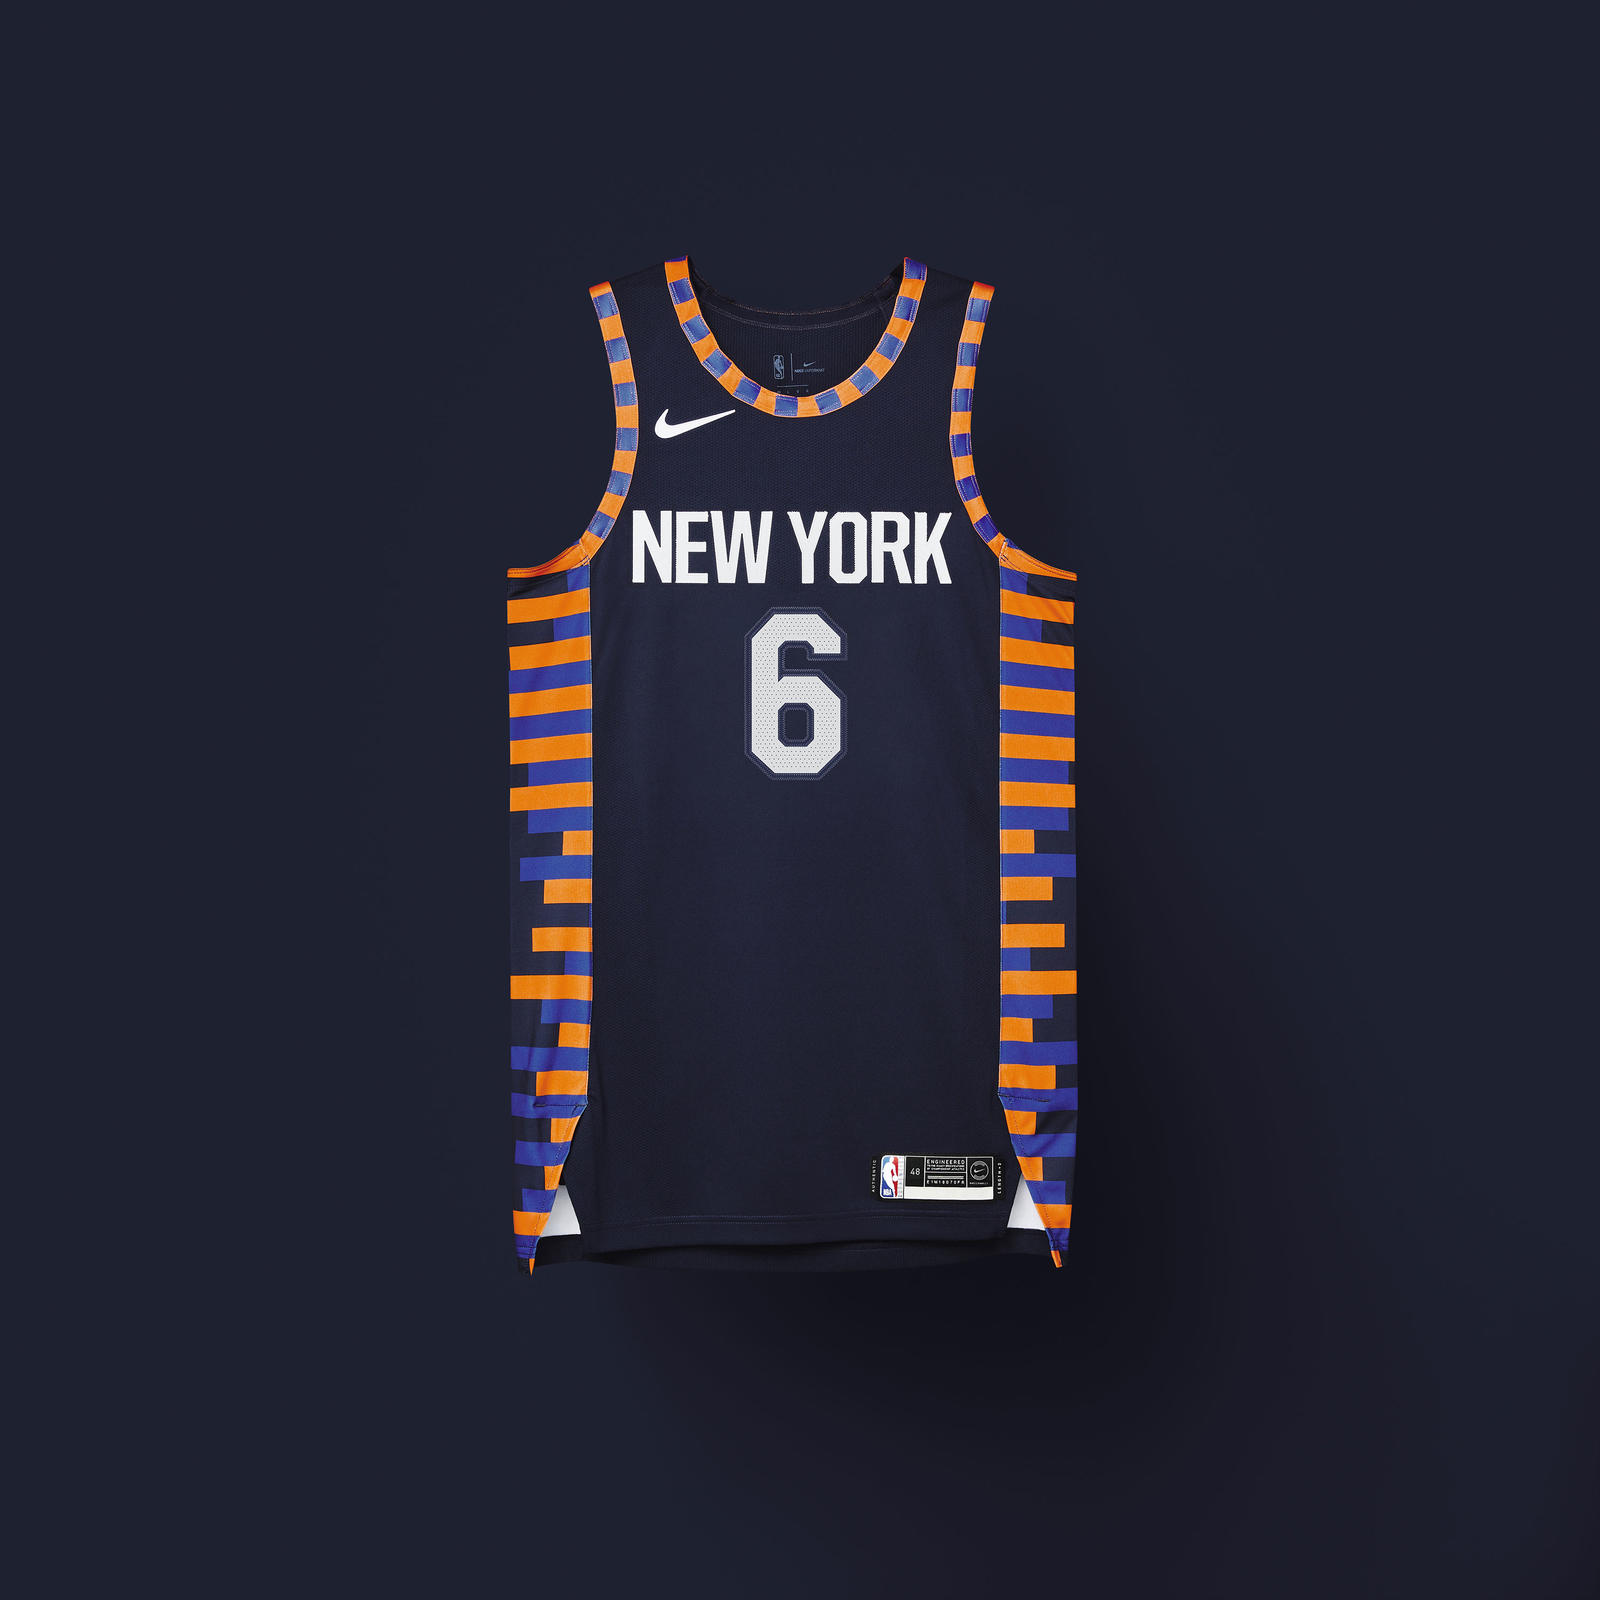 668fb84c9 NBA City Edition Uniforms 2018-19  Brooklyn